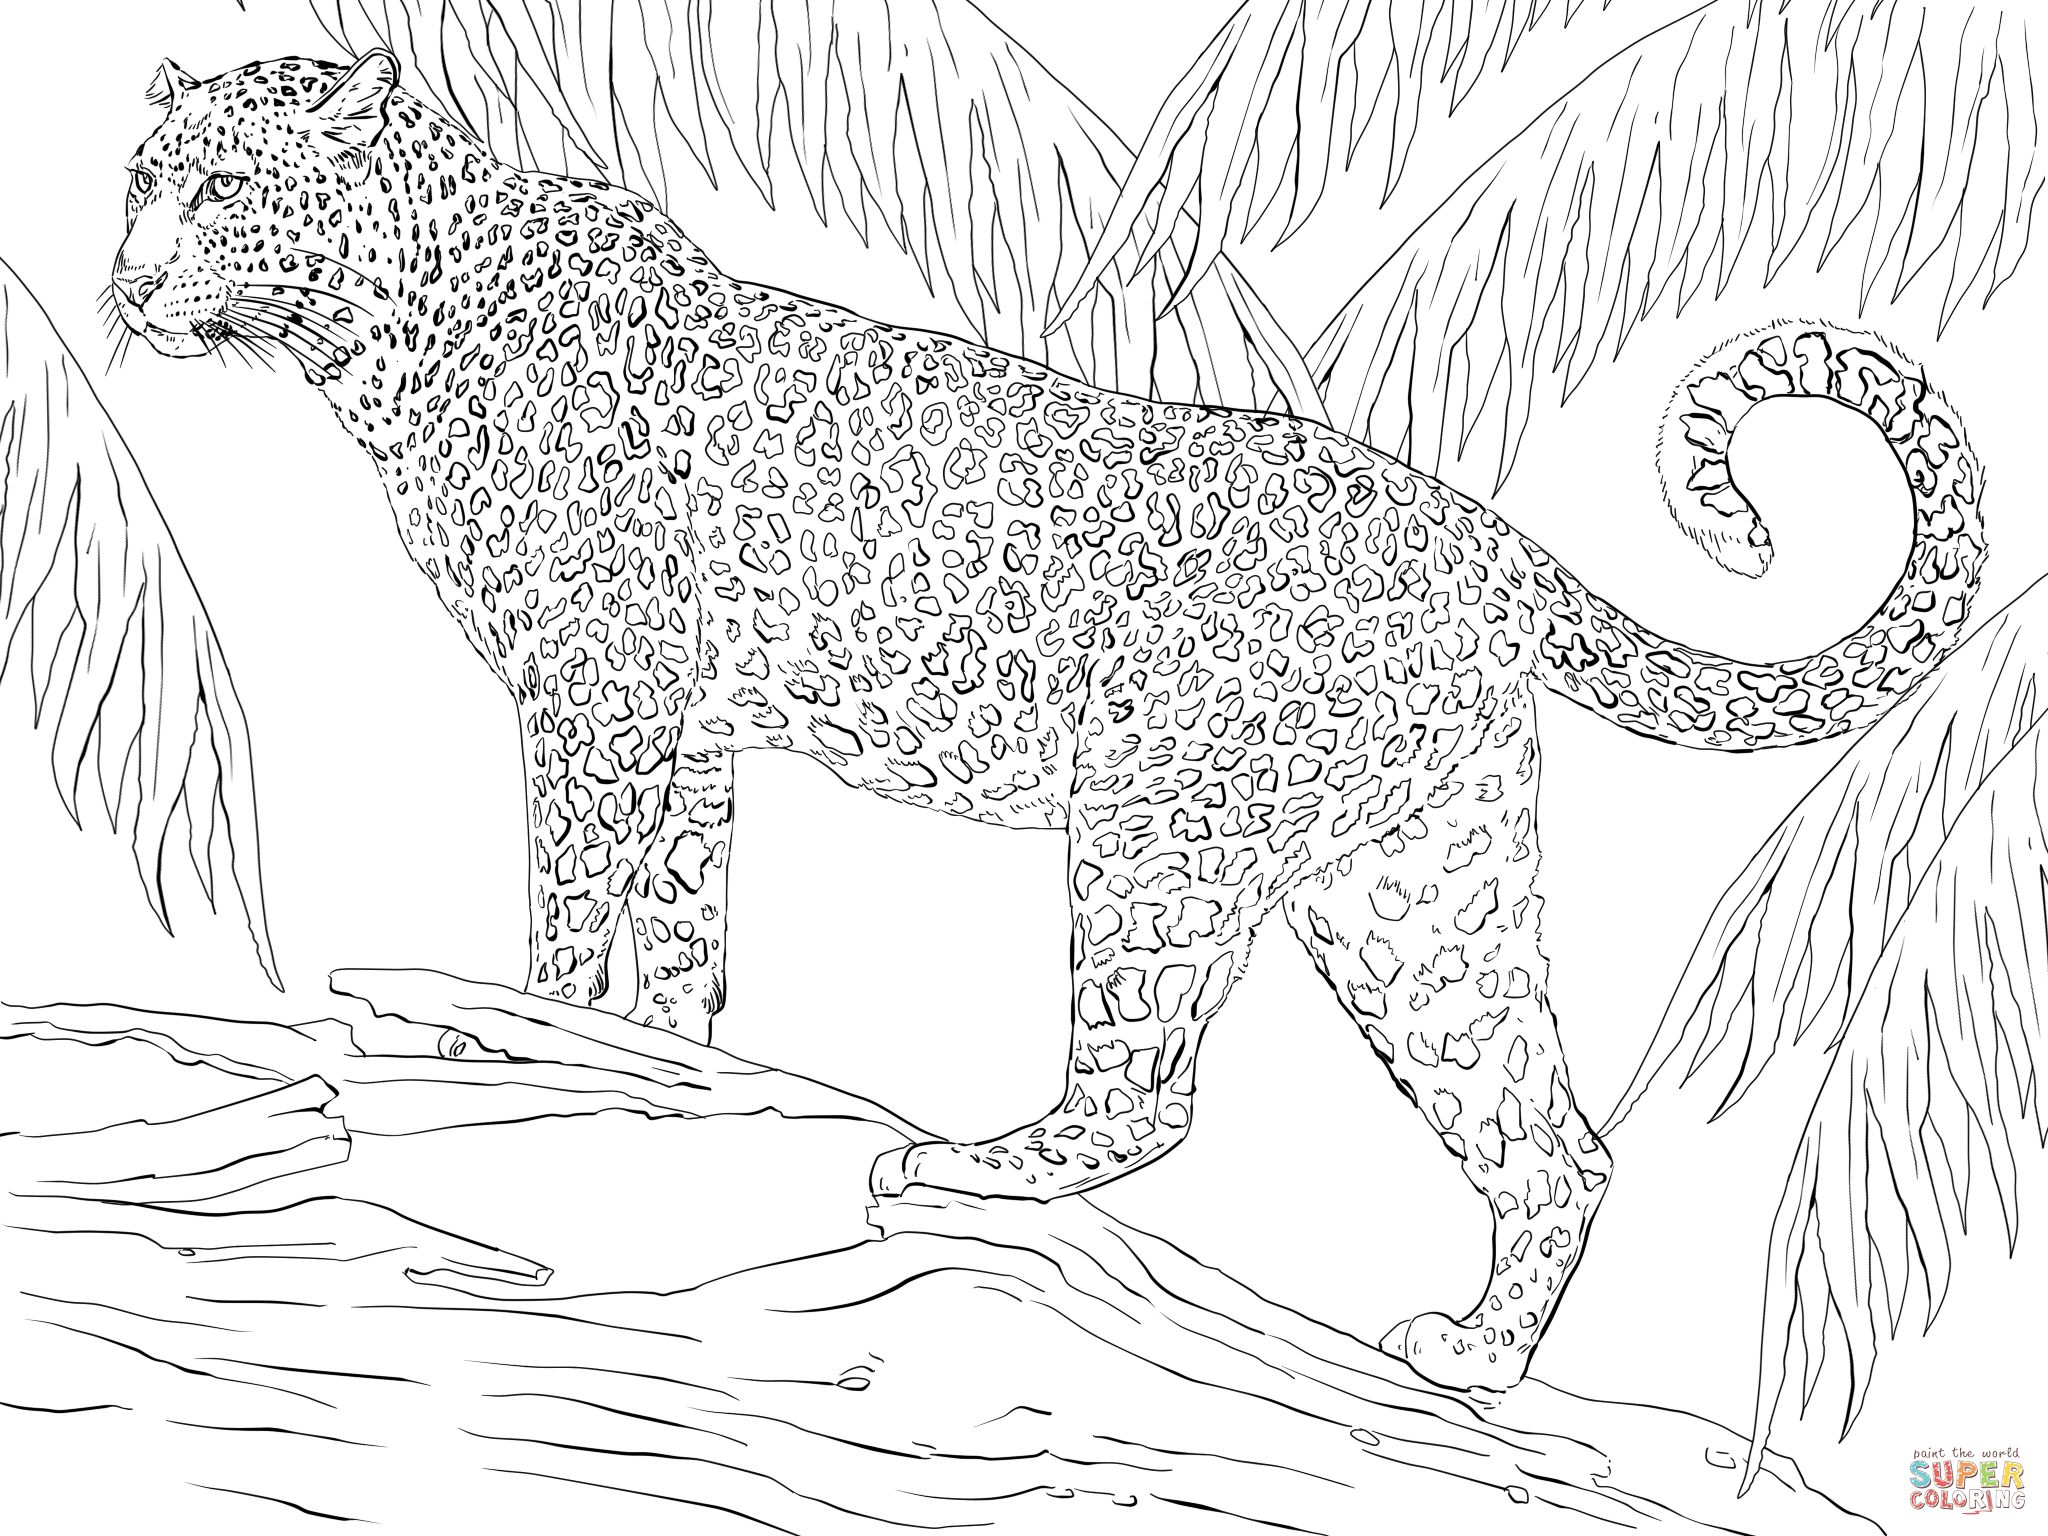 Jaguar Super Coloring With Images Zoo Animal Coloring Pages